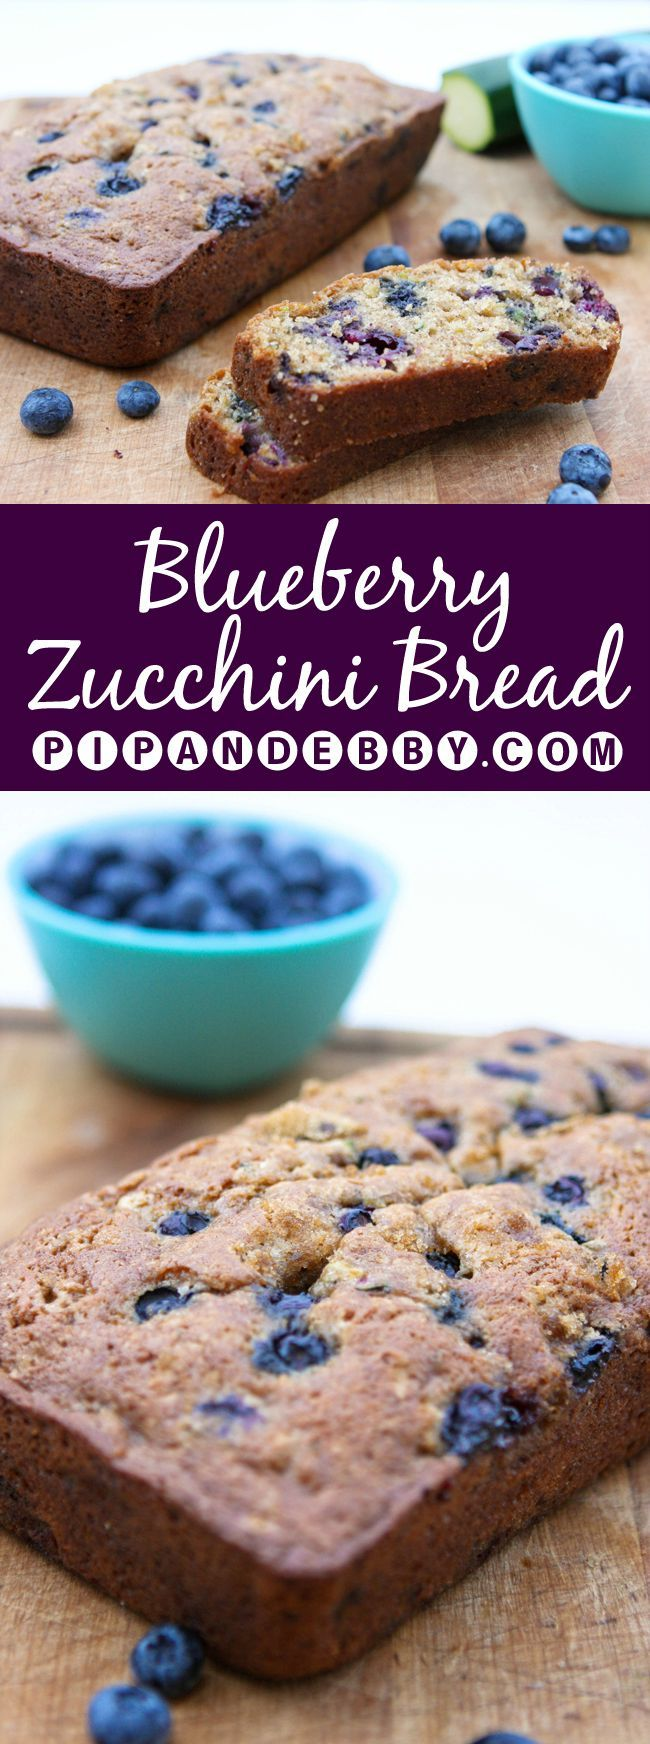 Blueberry Zucchini Bread | This is such a great way to use up zucchini! This bread is moist and delicious beyond your wildest dreams.. :)